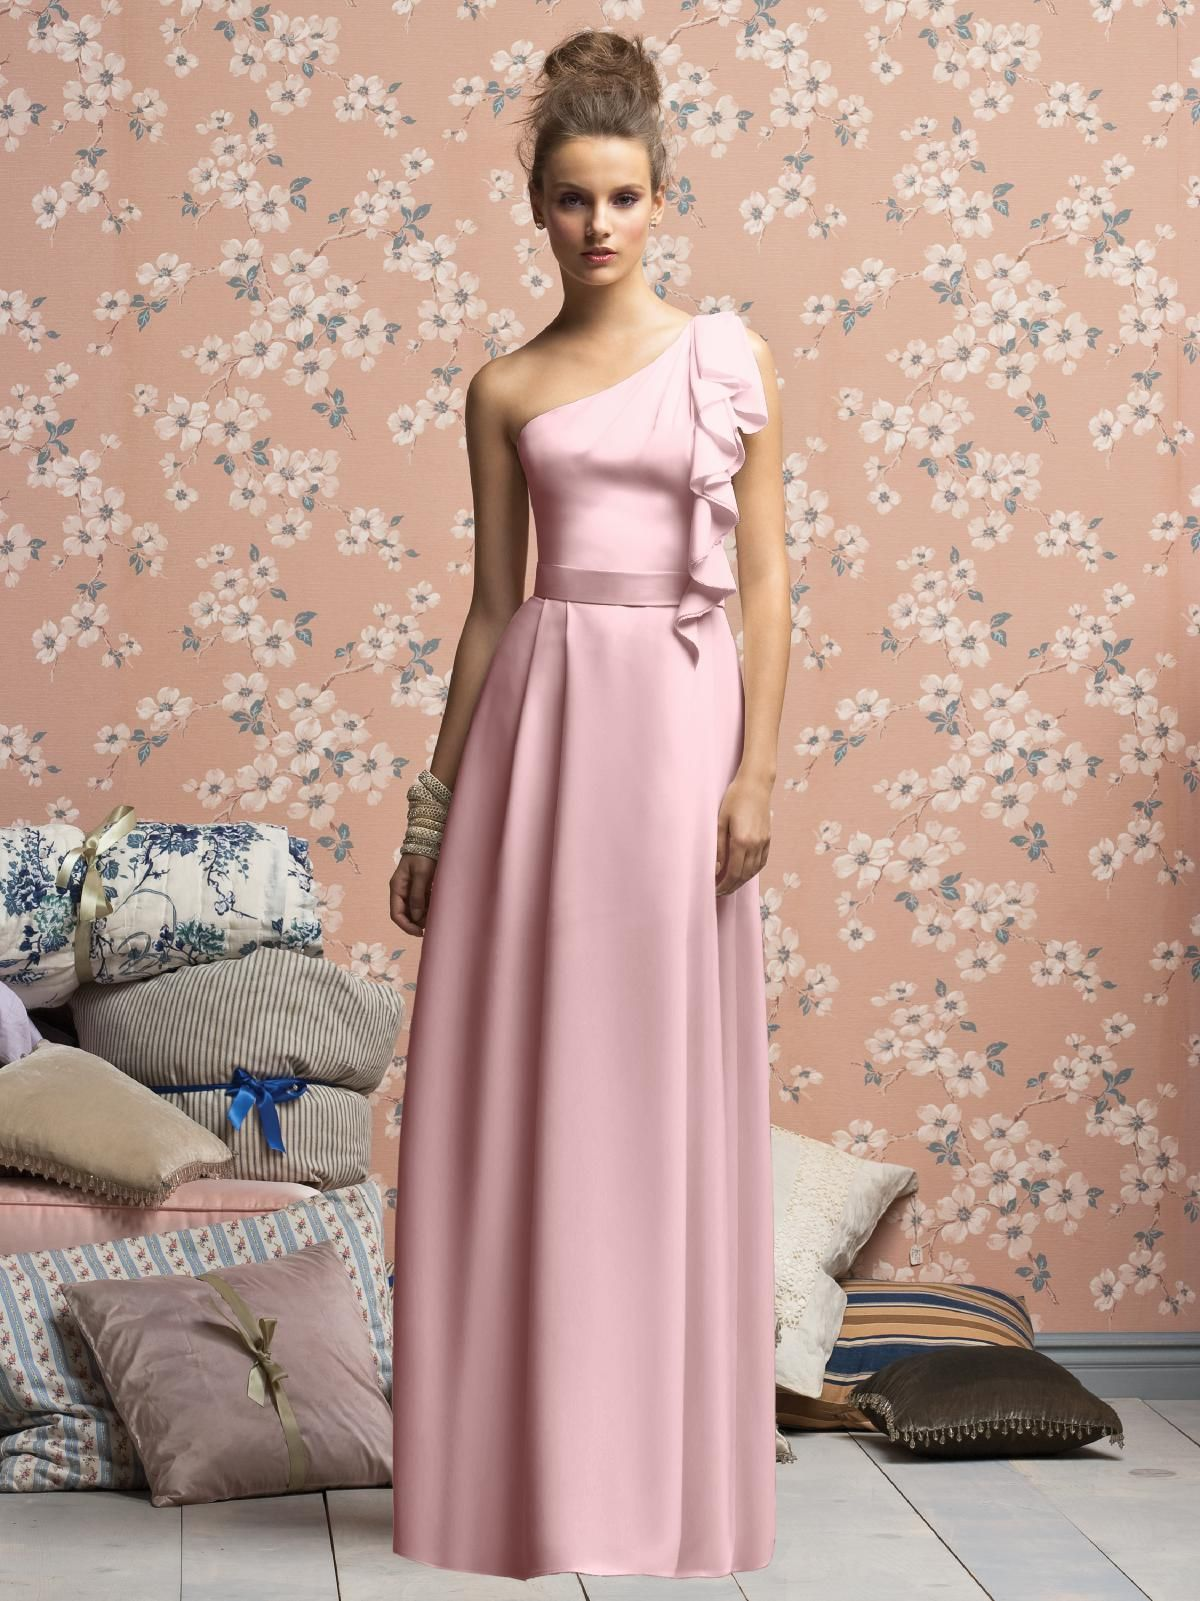 bridesmaid dress in petal pink | wedding dresses | Pinterest